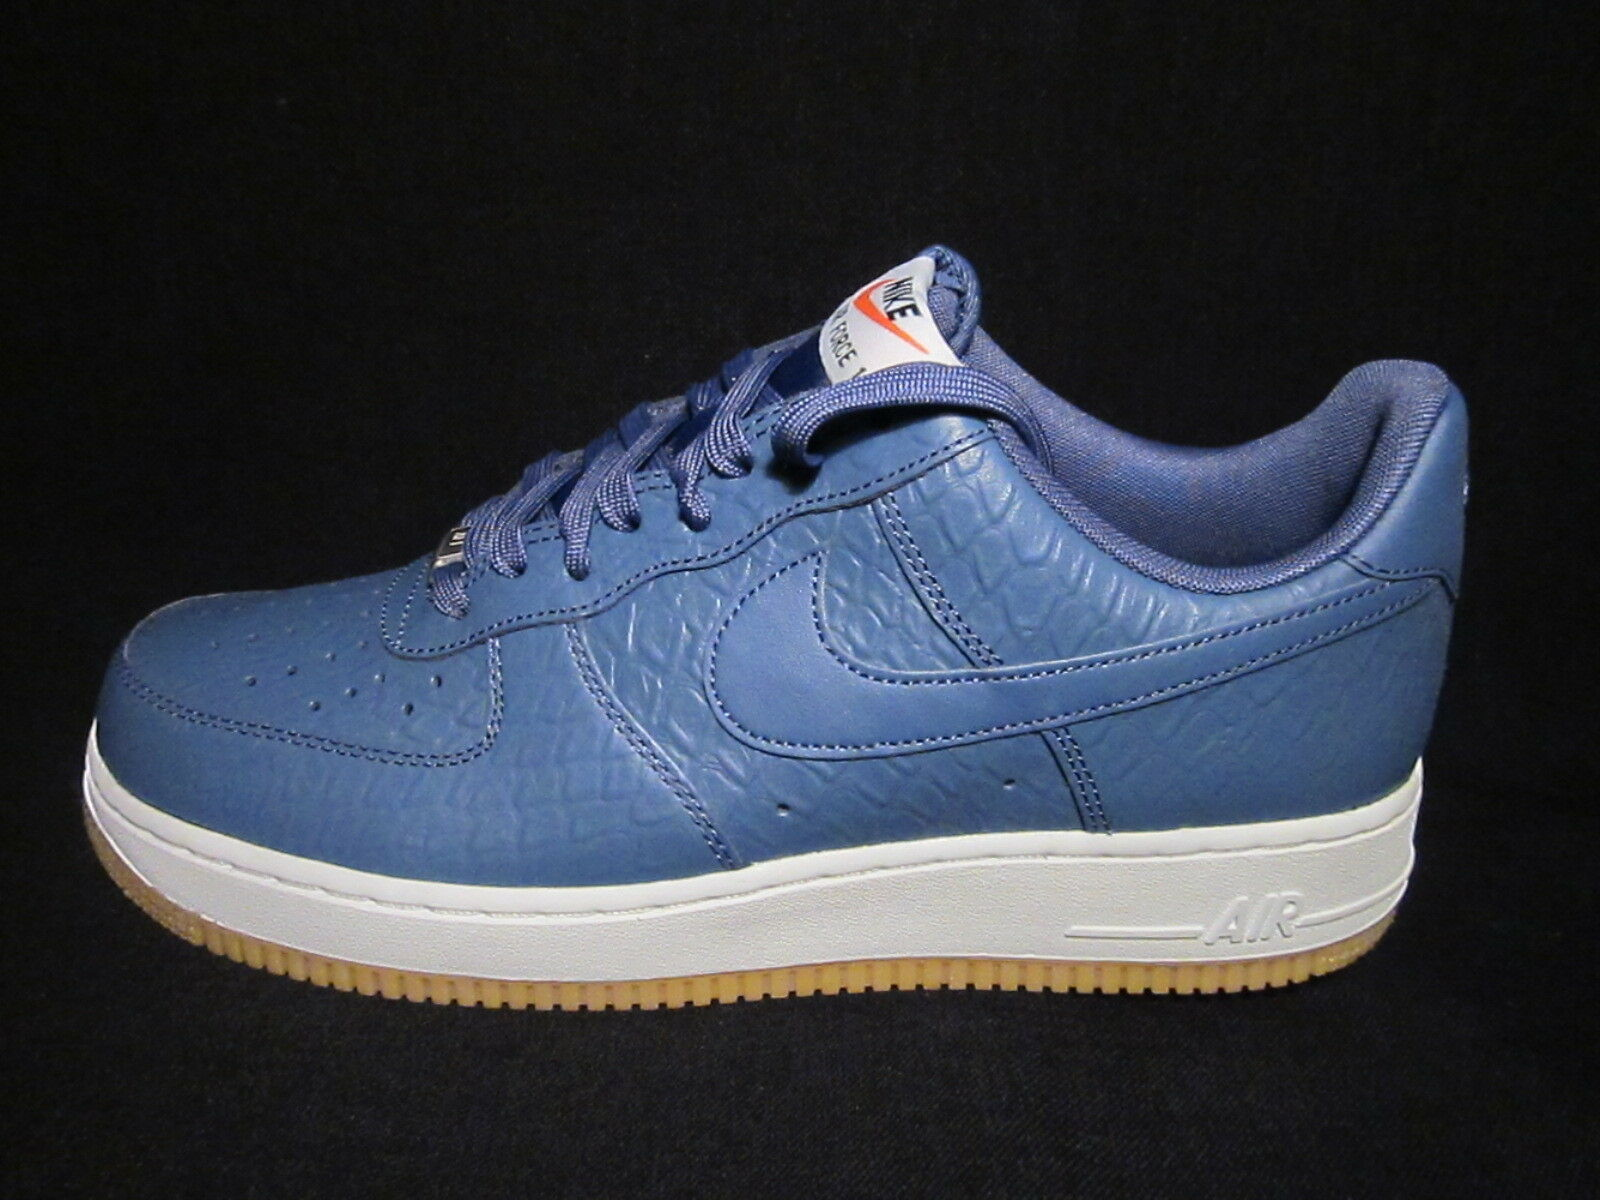 MENS NIKE AIR FORCE TRAINERS 1 '07 LV8 BLUE TRAINERS FORCE 718152400 f0f082